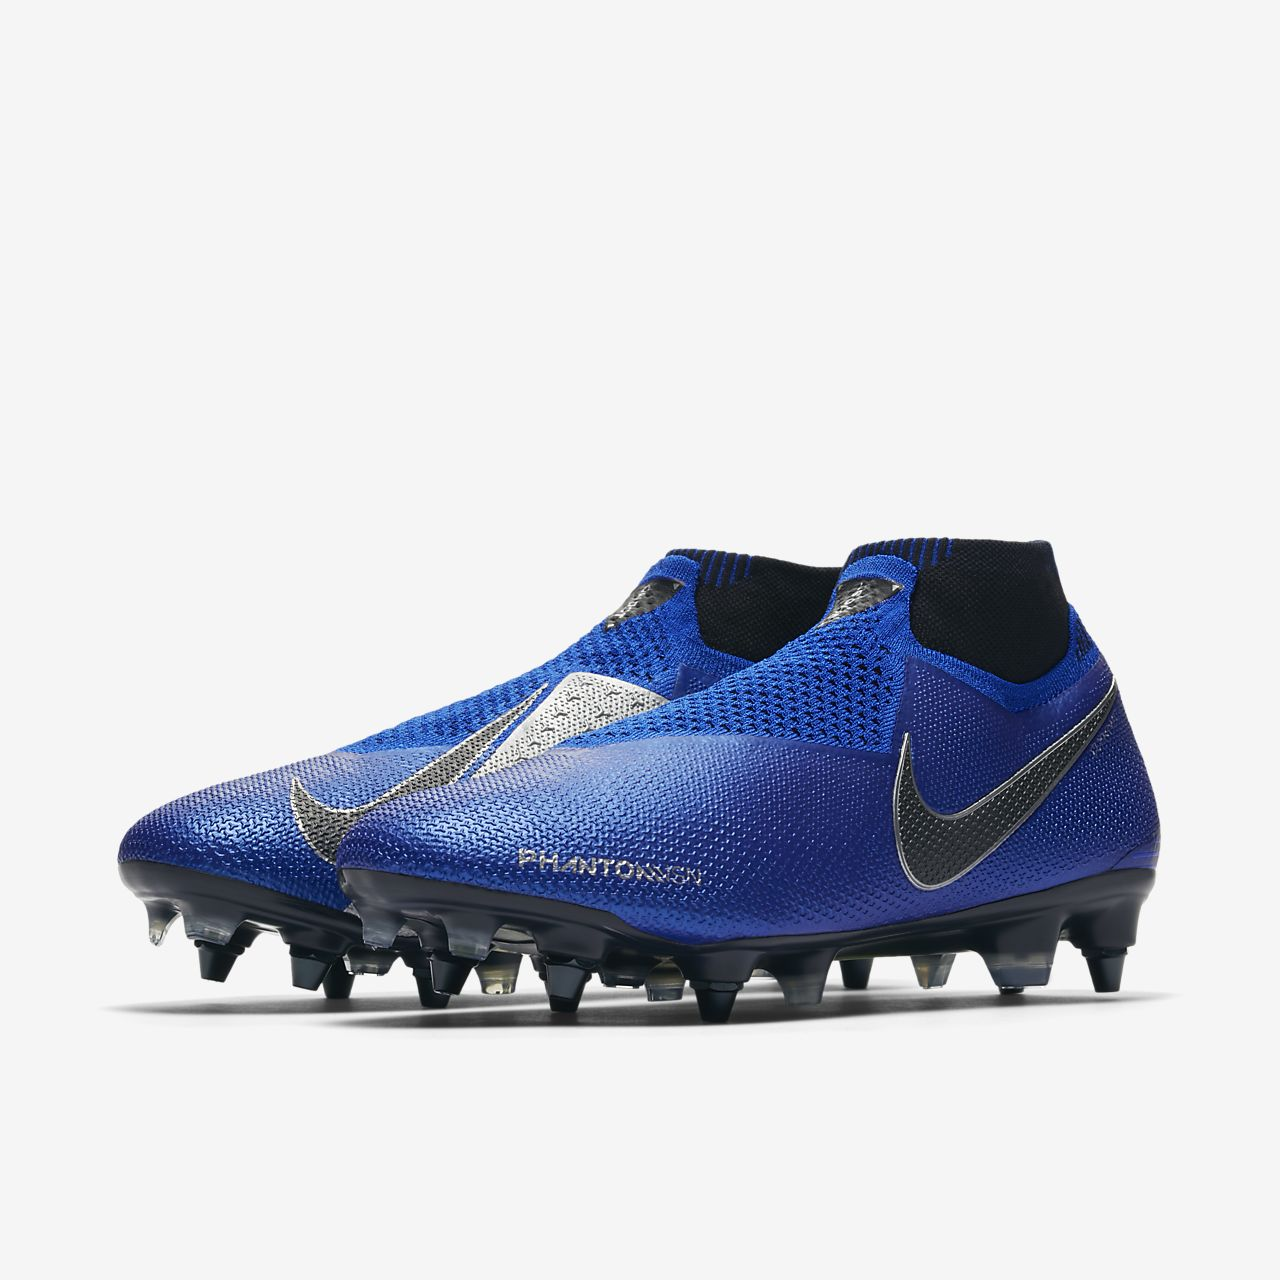 84e0170f809 Nike Phantom Vision Elite Dynamic Fit Anti-Clog SG-PRO Football Boot ...